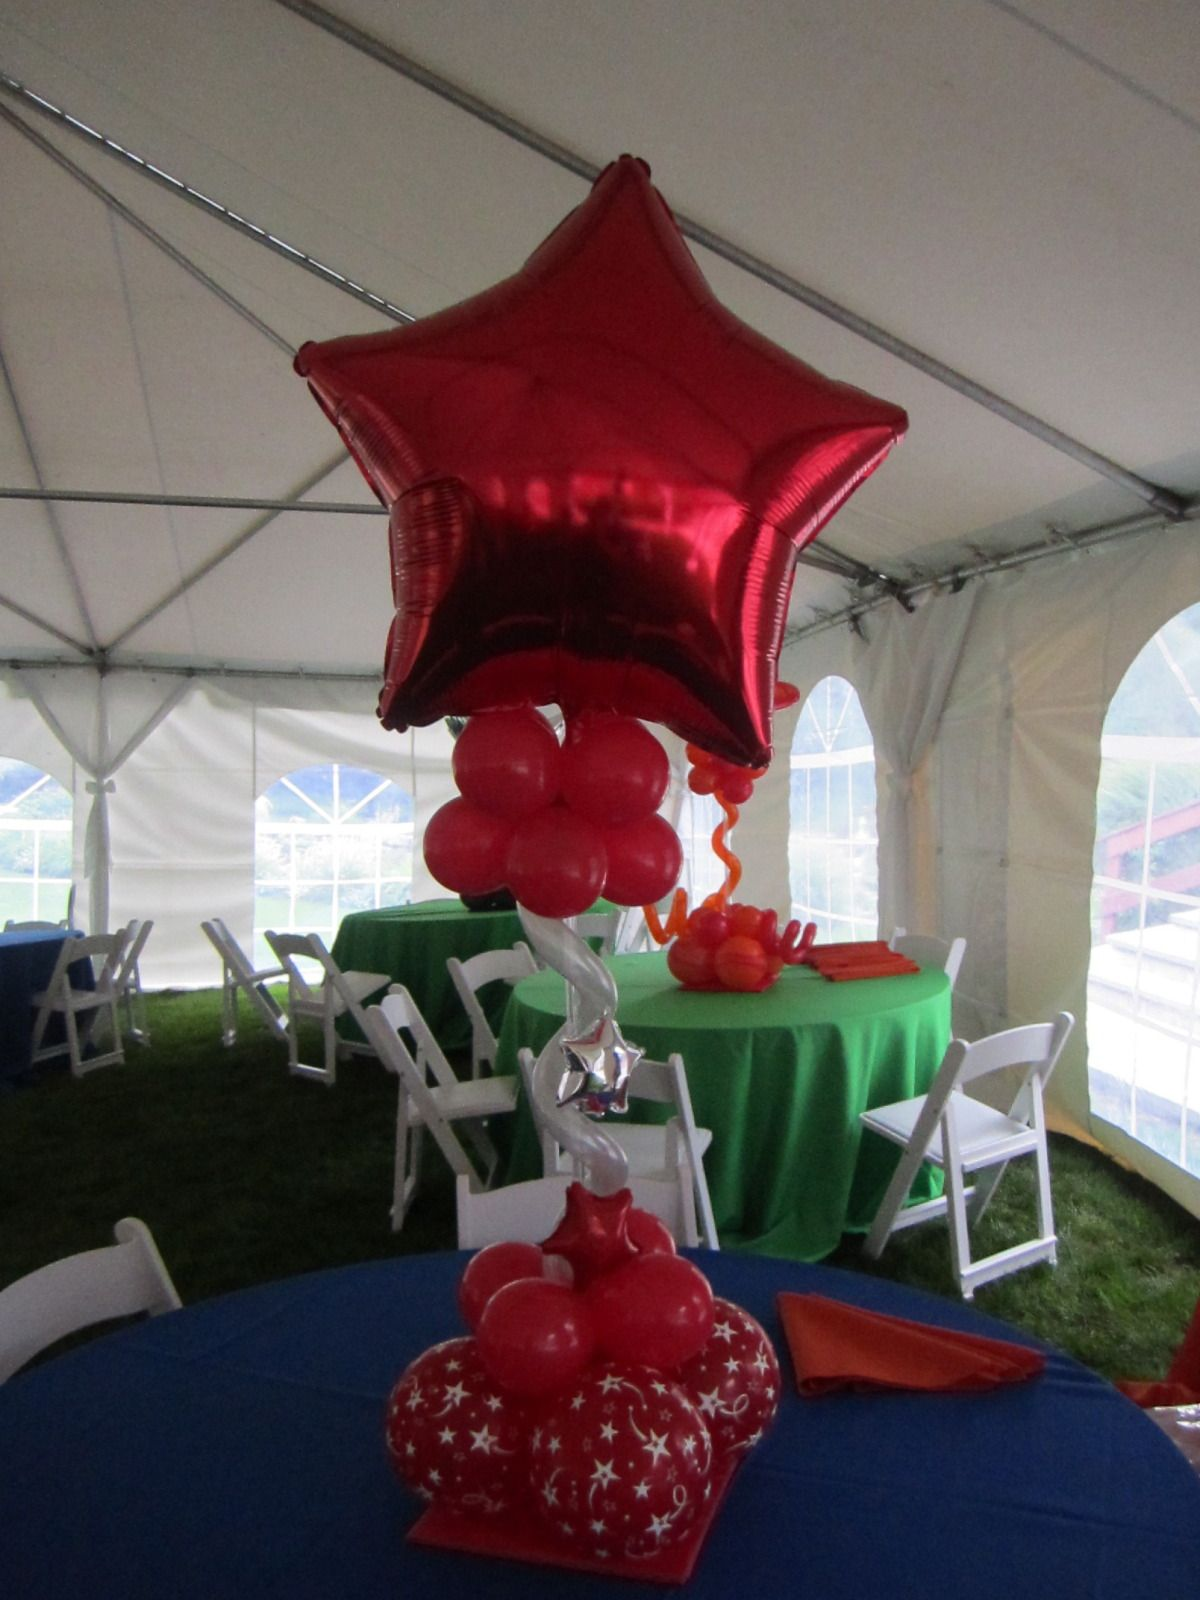 Elegant Balloons Gallery Graduations And School Decor School Decorations Balloons Balloon Decorations